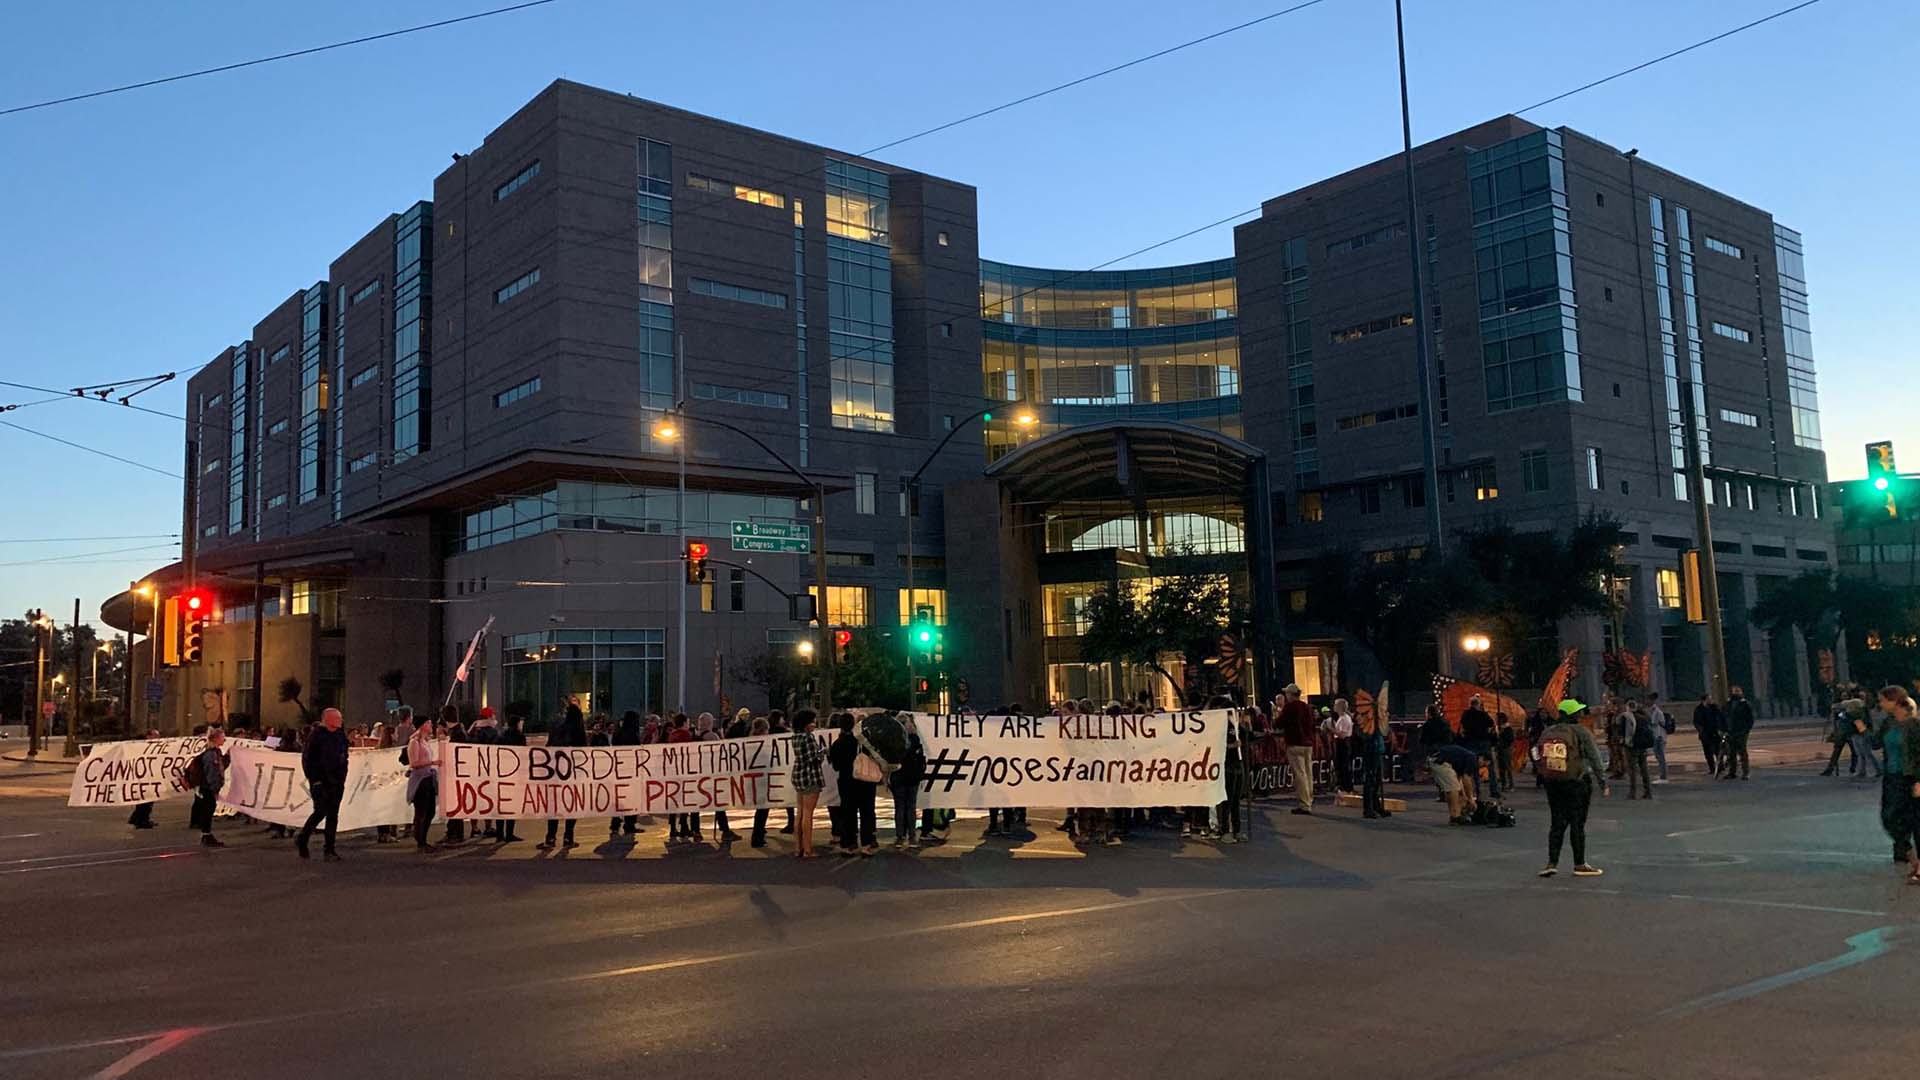 Demonstrators march in downtown Tucson after the November 21, 2018 acquittal of Border Patrol agent Lonnie Swartz on involuntary manslaughter charges in the cross-border shooting death of a 16 year old Mexican boy, Jose Antonio Elena Rodriguez.